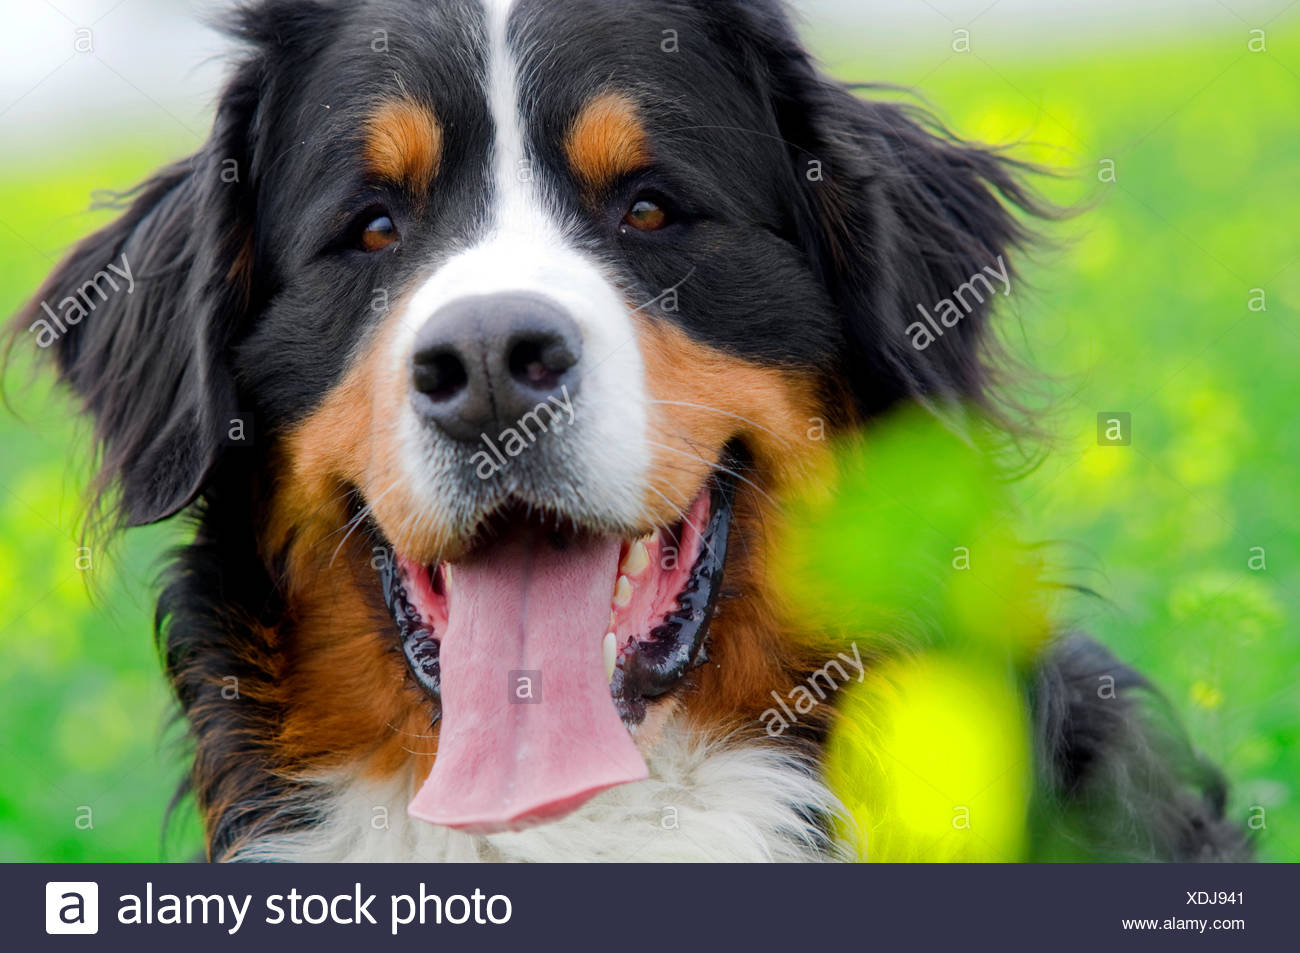 Bernese Mountain Dog portrait in flowers scenery - Stock Image